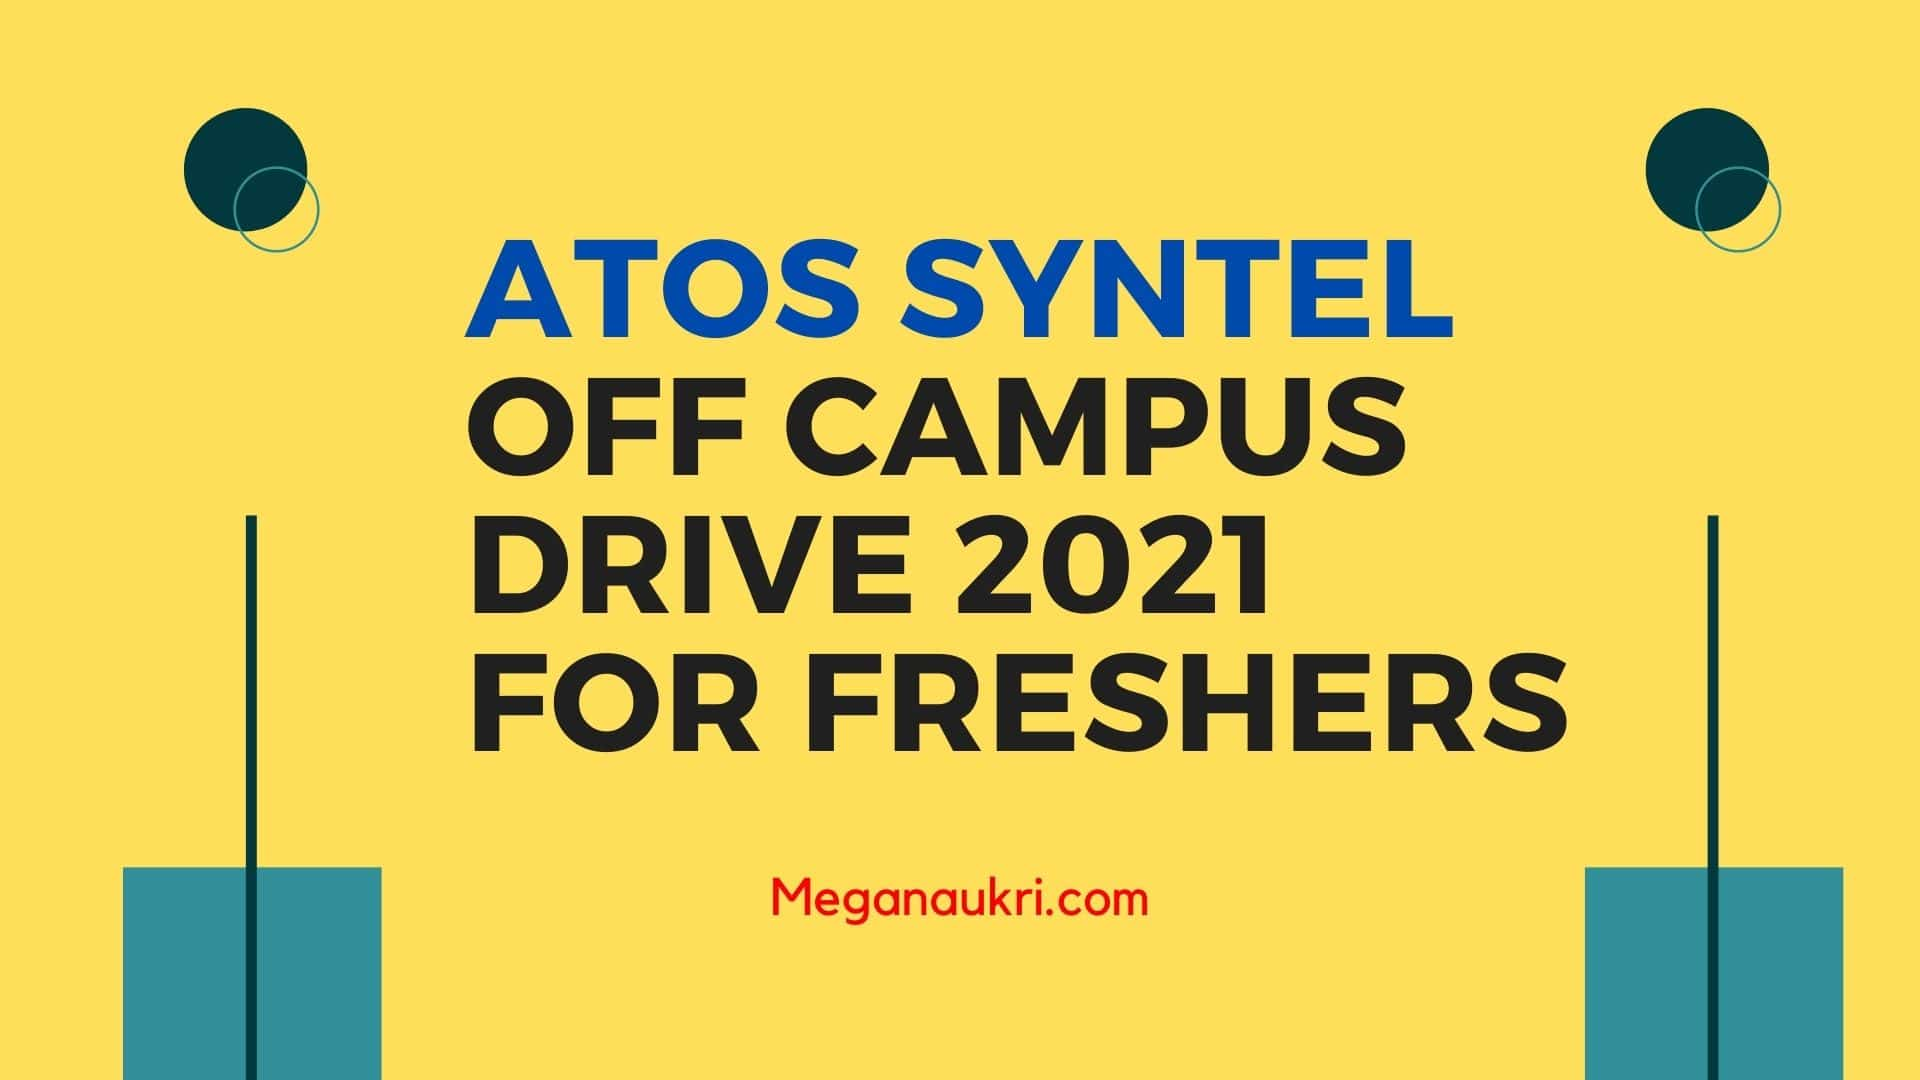 Atos-Syntel-Off-Campus-Drive-2021-for-freshers